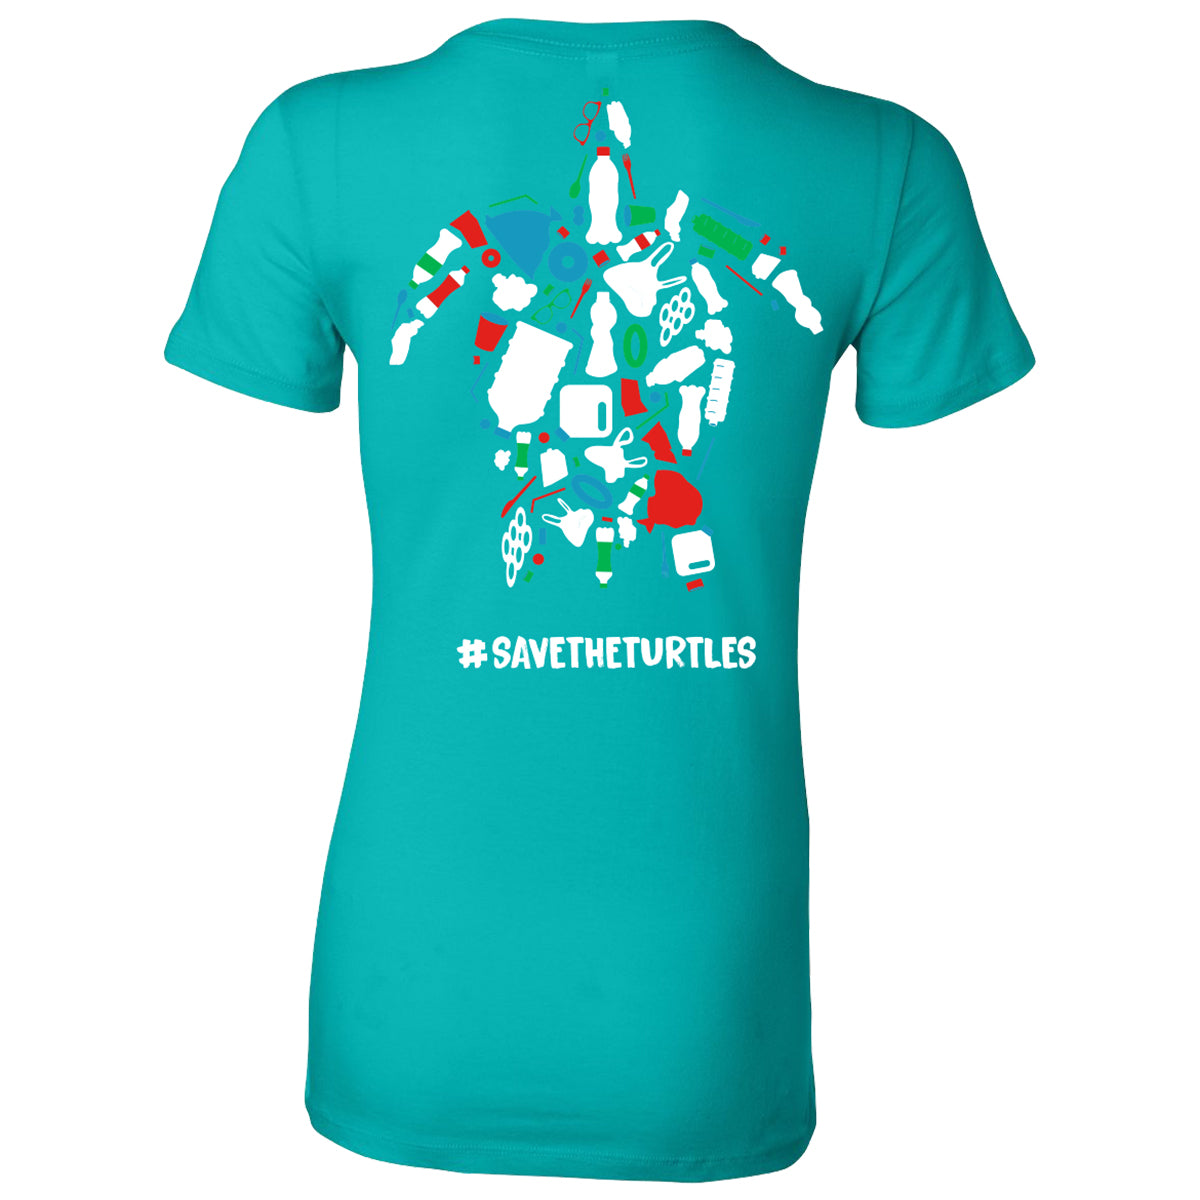 OTHFL Turtle Awareness Women's Teal